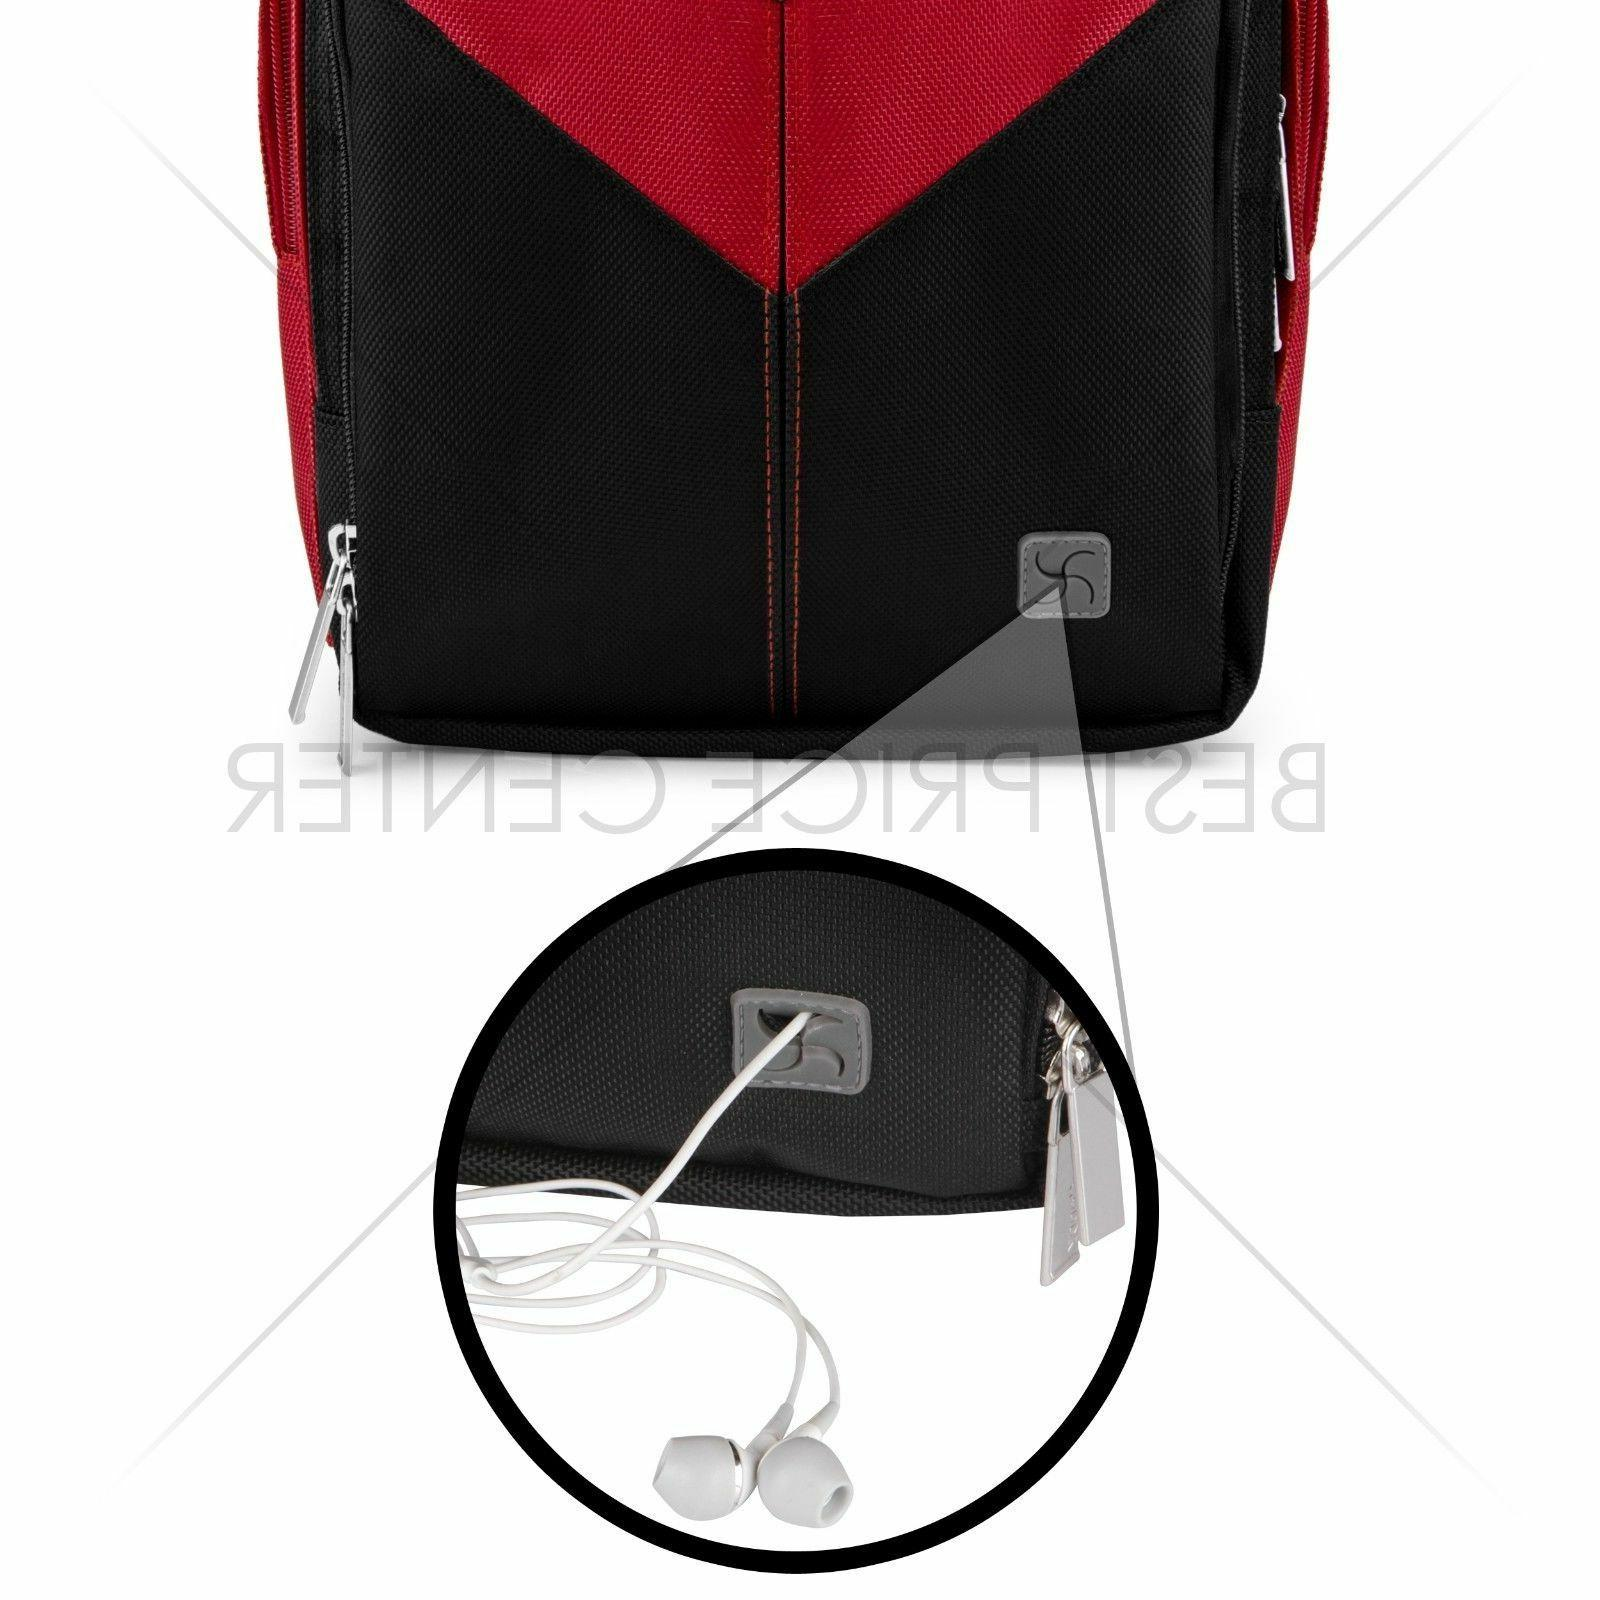 For PRO Compact Camera Backpack Red